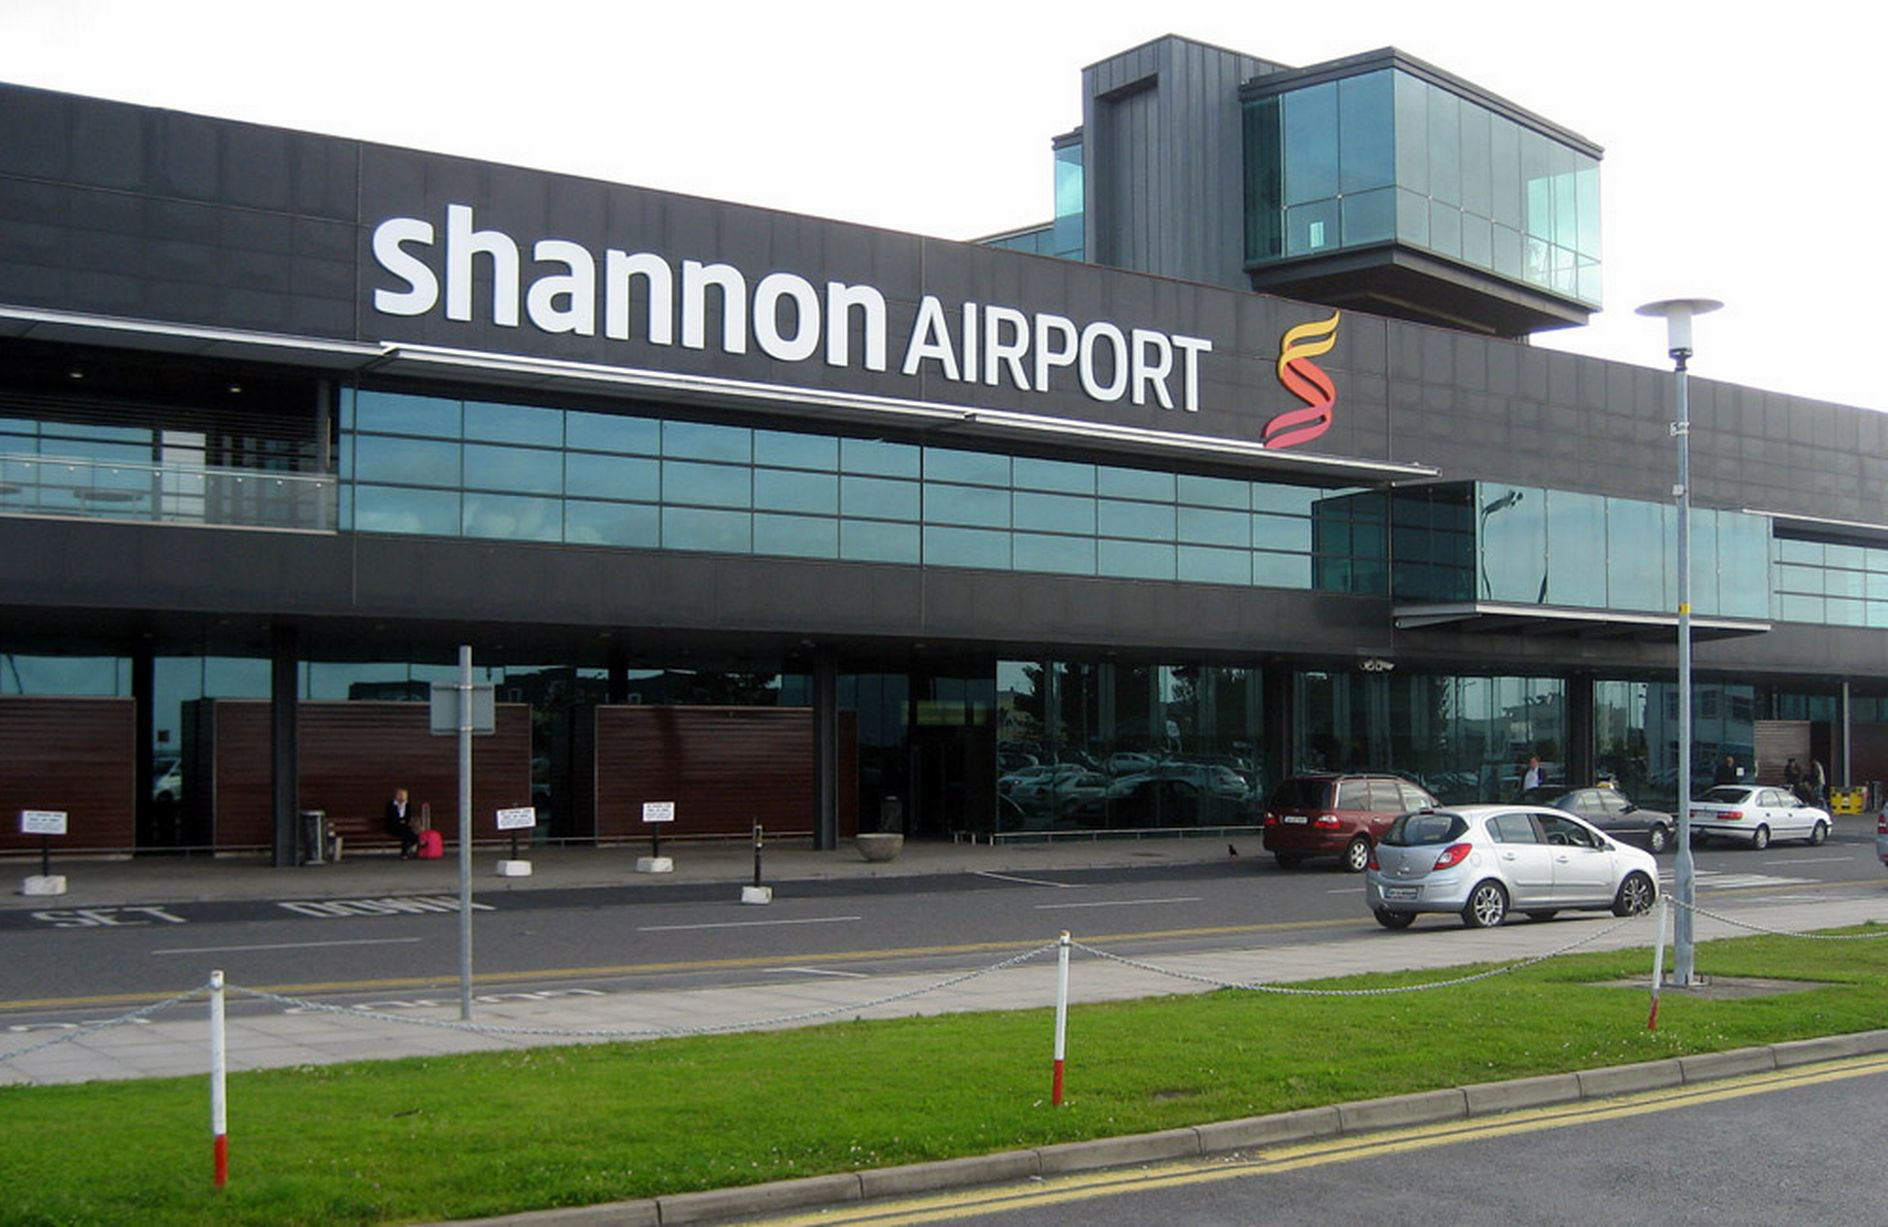 Shannon Airport World Route Marketing Awards 2016